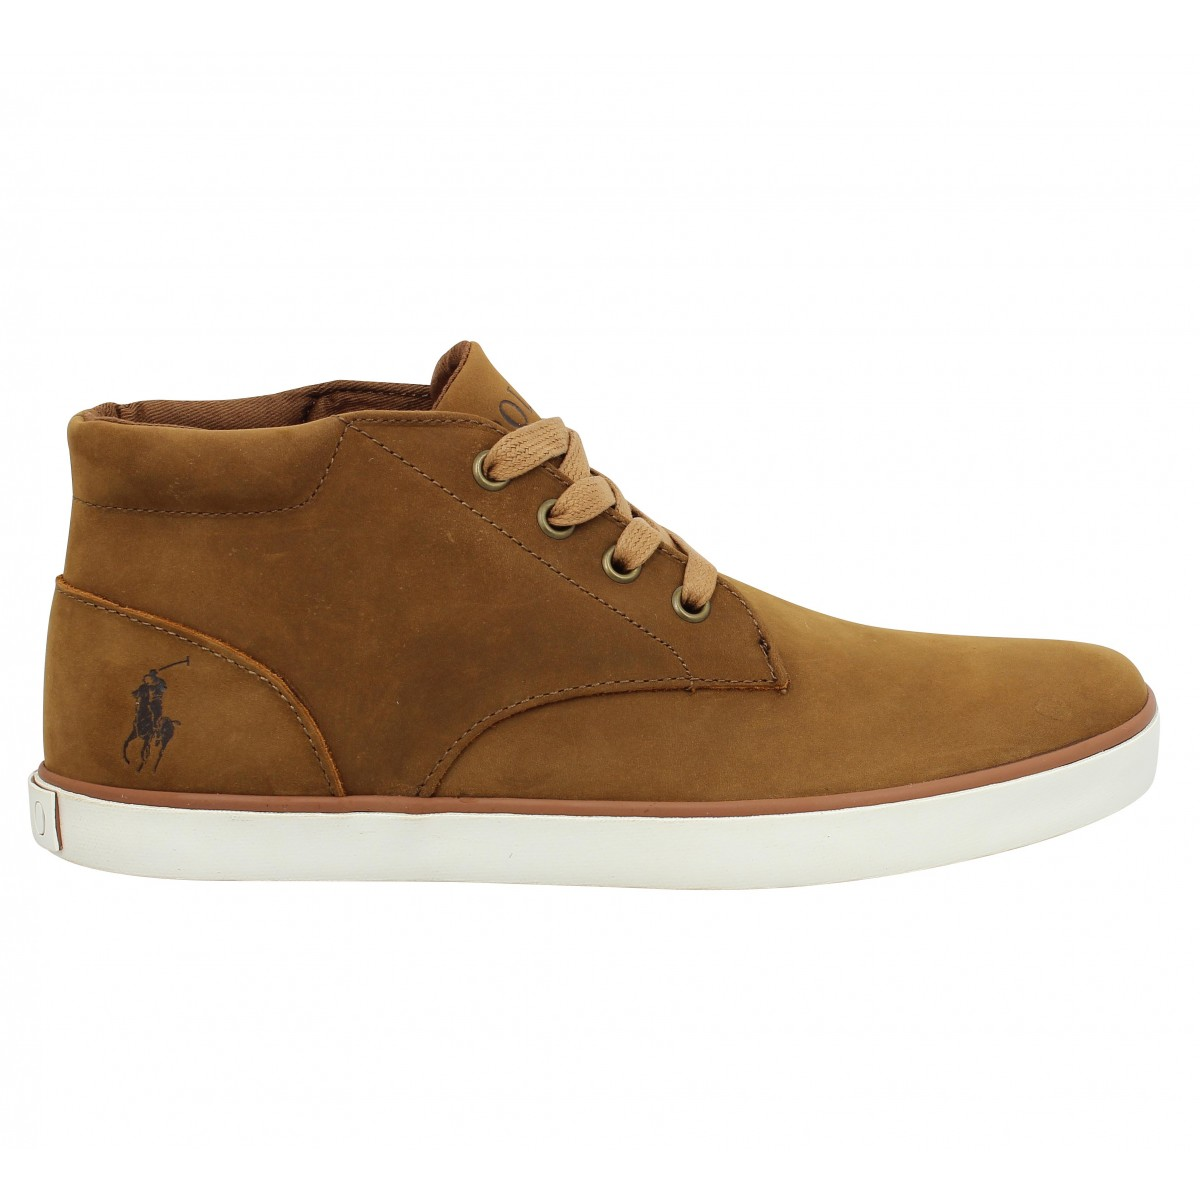 Chaussures Polo ralph lauren odie cognac homme   Fanny chaussures a1453fac9c3